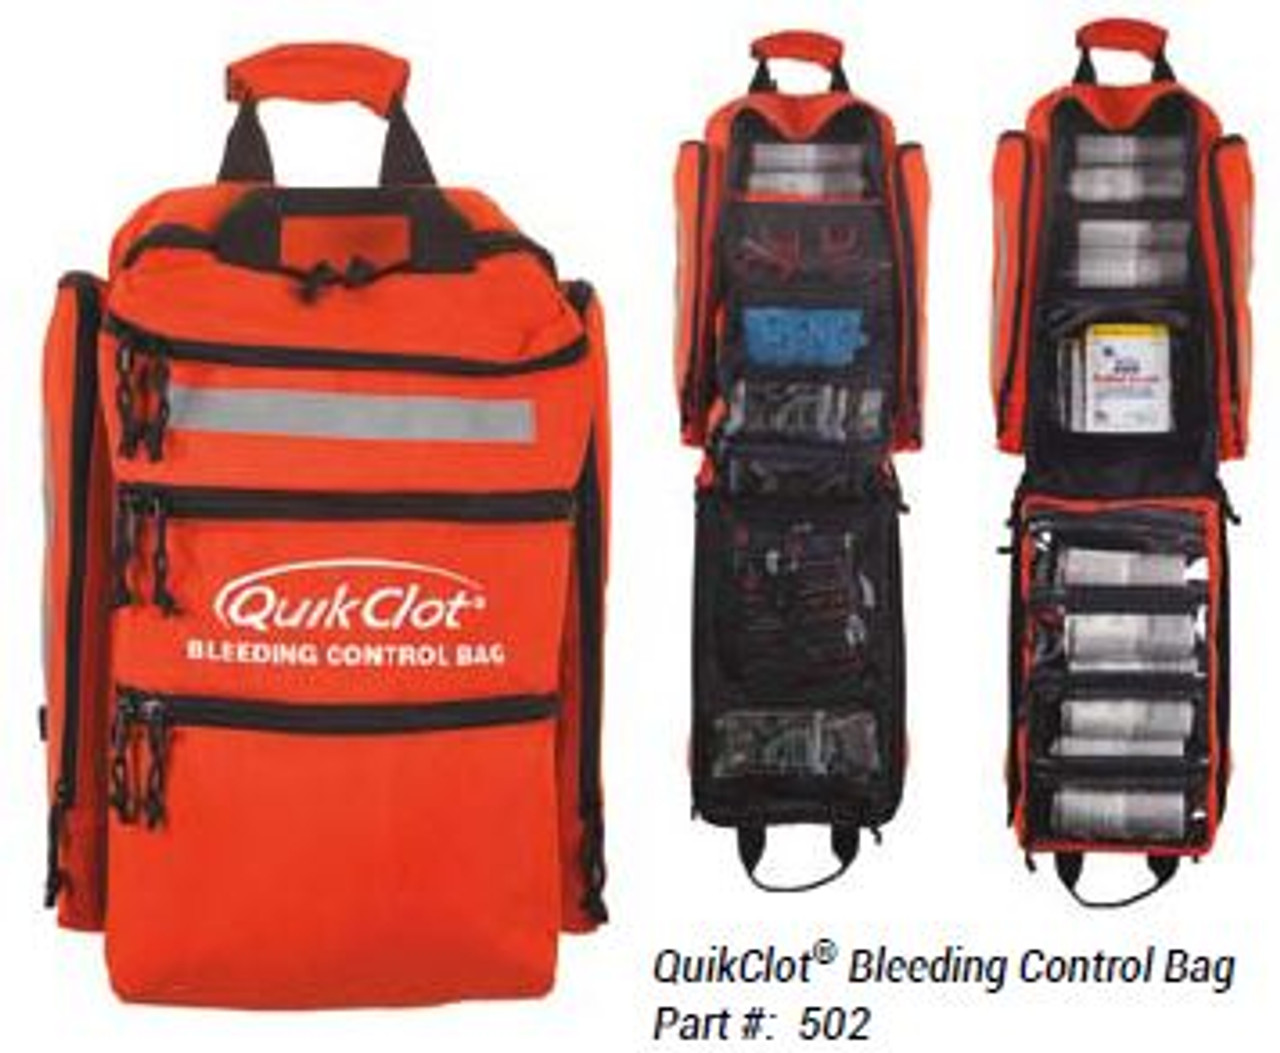 QuikClot Bleeding Control Bag (showing open bag)